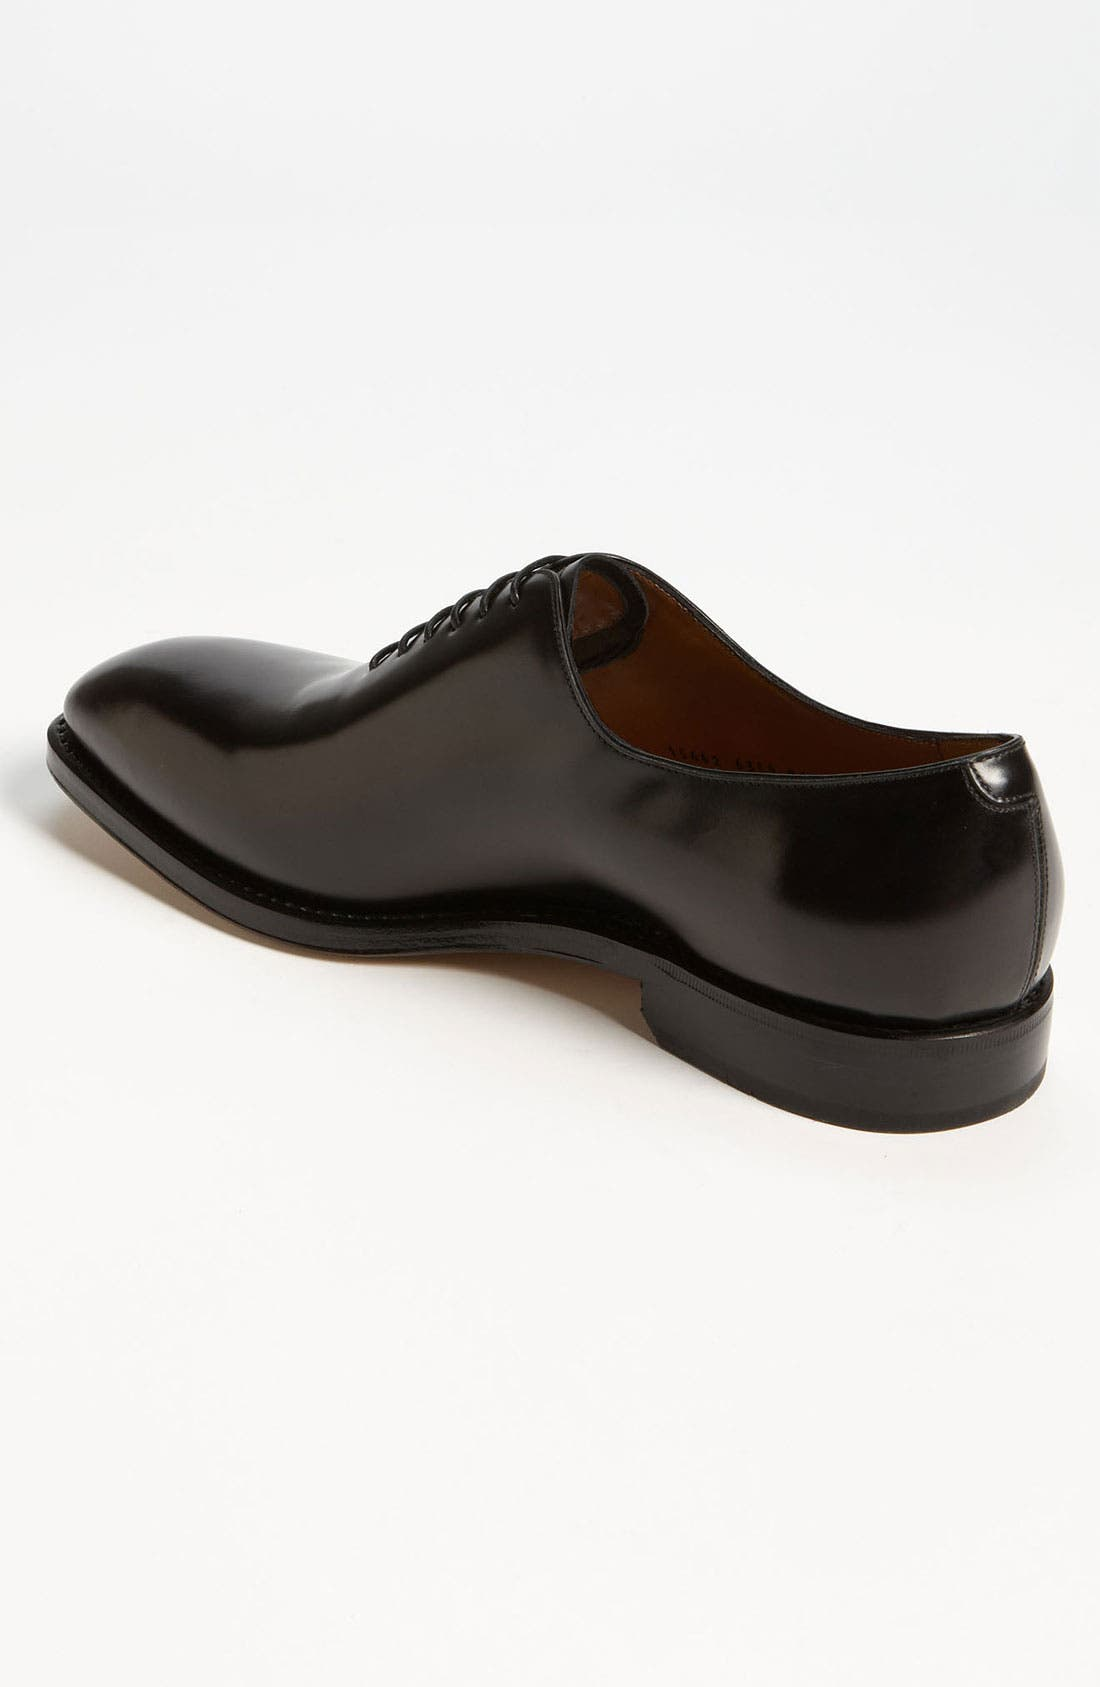 Alternate Image 2  - Salvatore Ferragamo 'Carmelo' Plain Toe Oxford